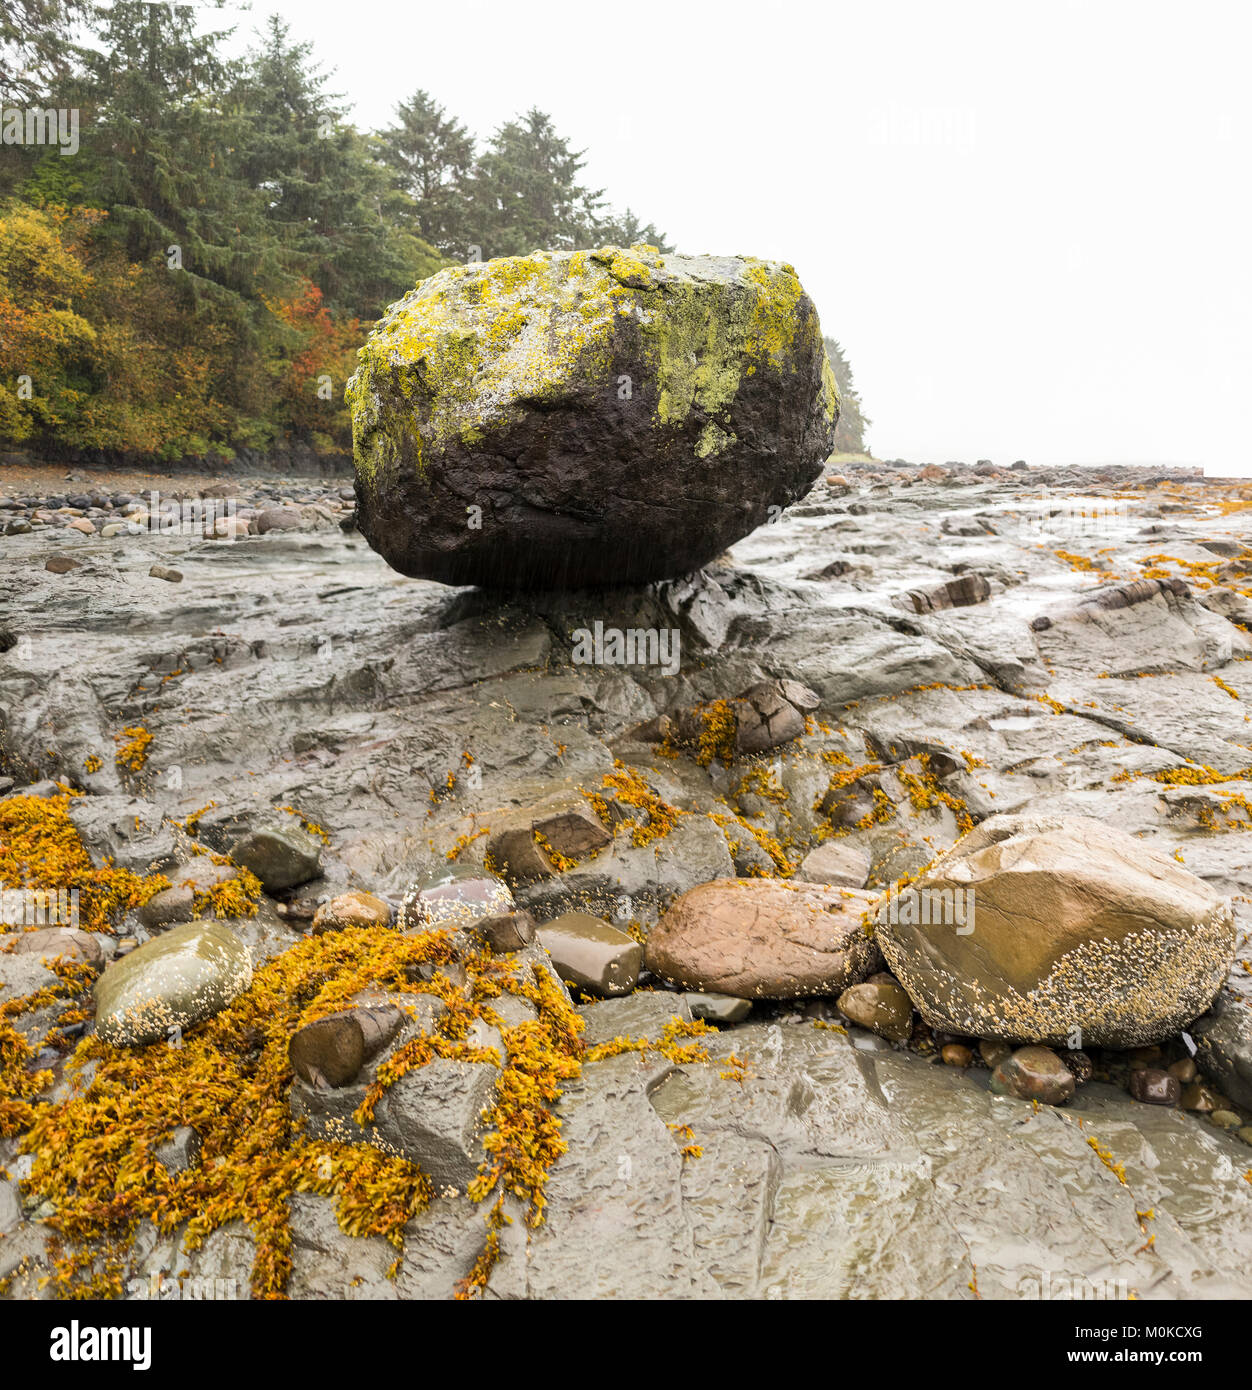 Balancing Rock Beach out of Skidigate; Haida Gwaii, British Columbia, Canada - Stock Image